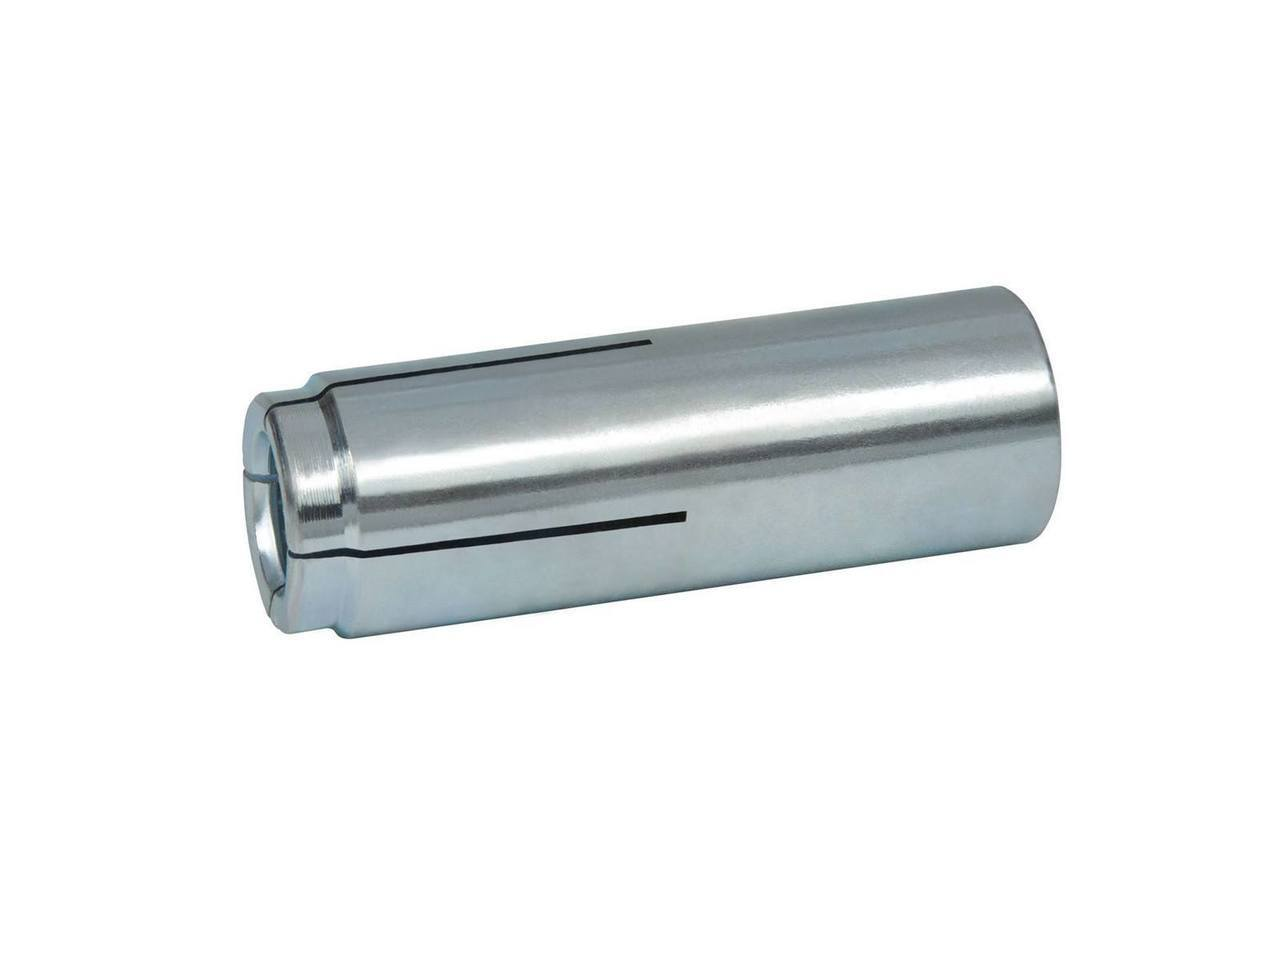 Lipped Carbon Steel Zinc Plated 50//Bx Powers Flanged Dropin Internally Threaded Expansion Anchors 3//8